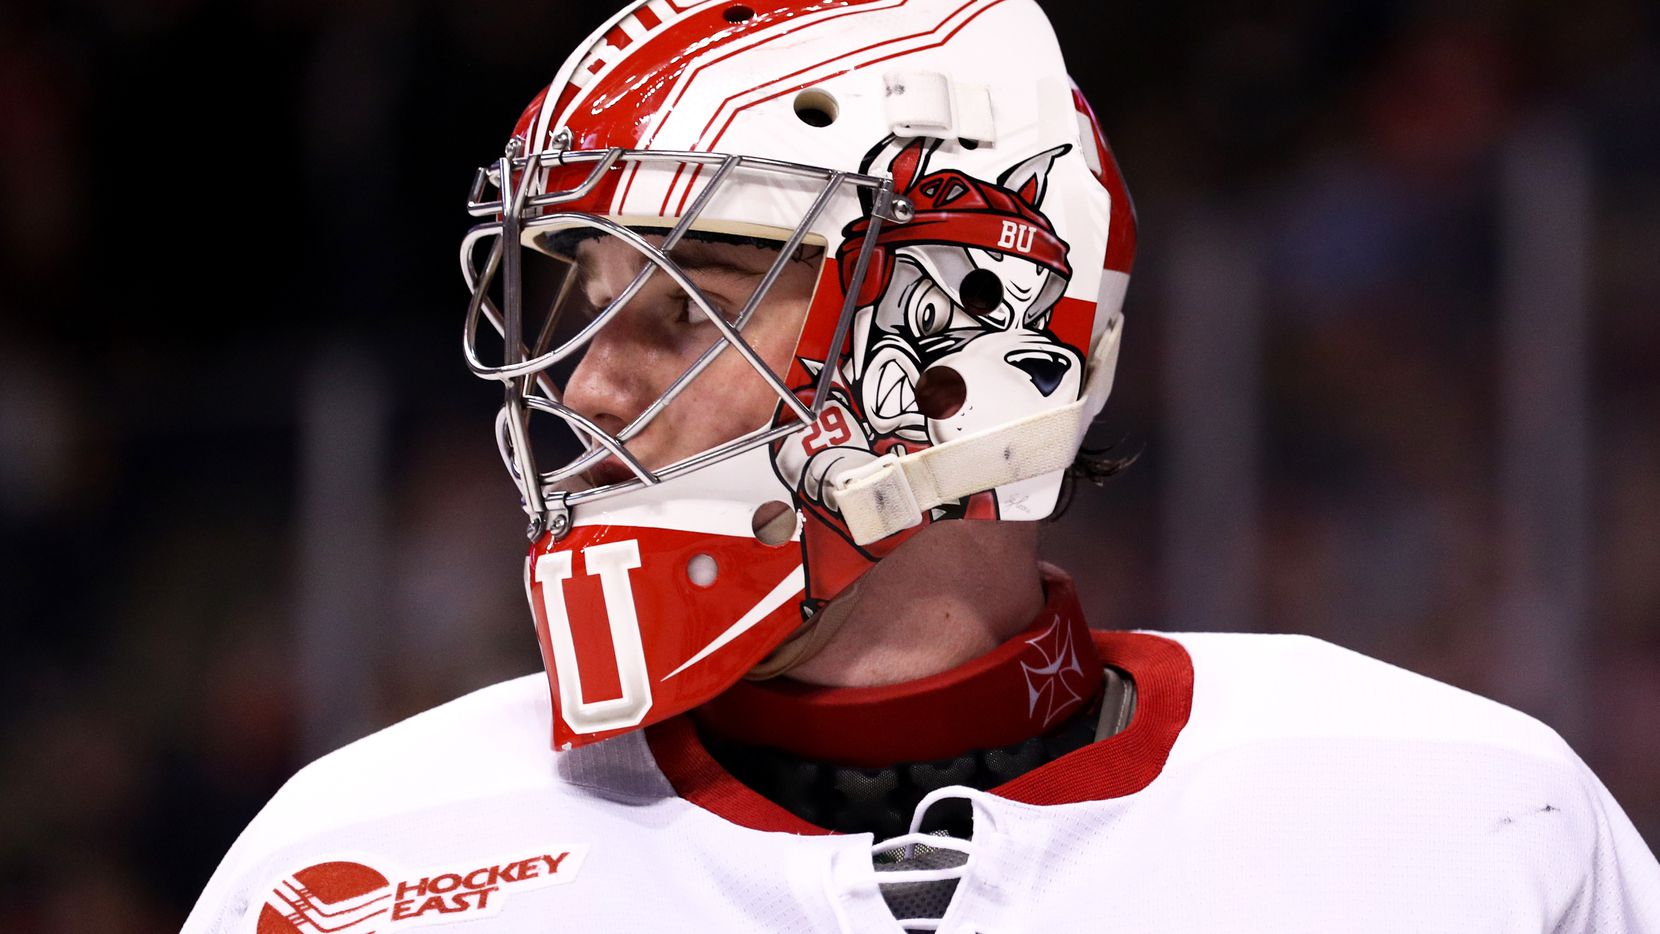 BOSTON, MA - FEBRUARY 13: Jake Oettinger #29 of the Boston University Terriers looks on during the second period of the 2017 Beanpot Tournament Championship against the Harvard Crimson at TD Garden on February 13, 2017 in Boston, Massachusetts. (Photo by Maddie Meyer/Getty Images)